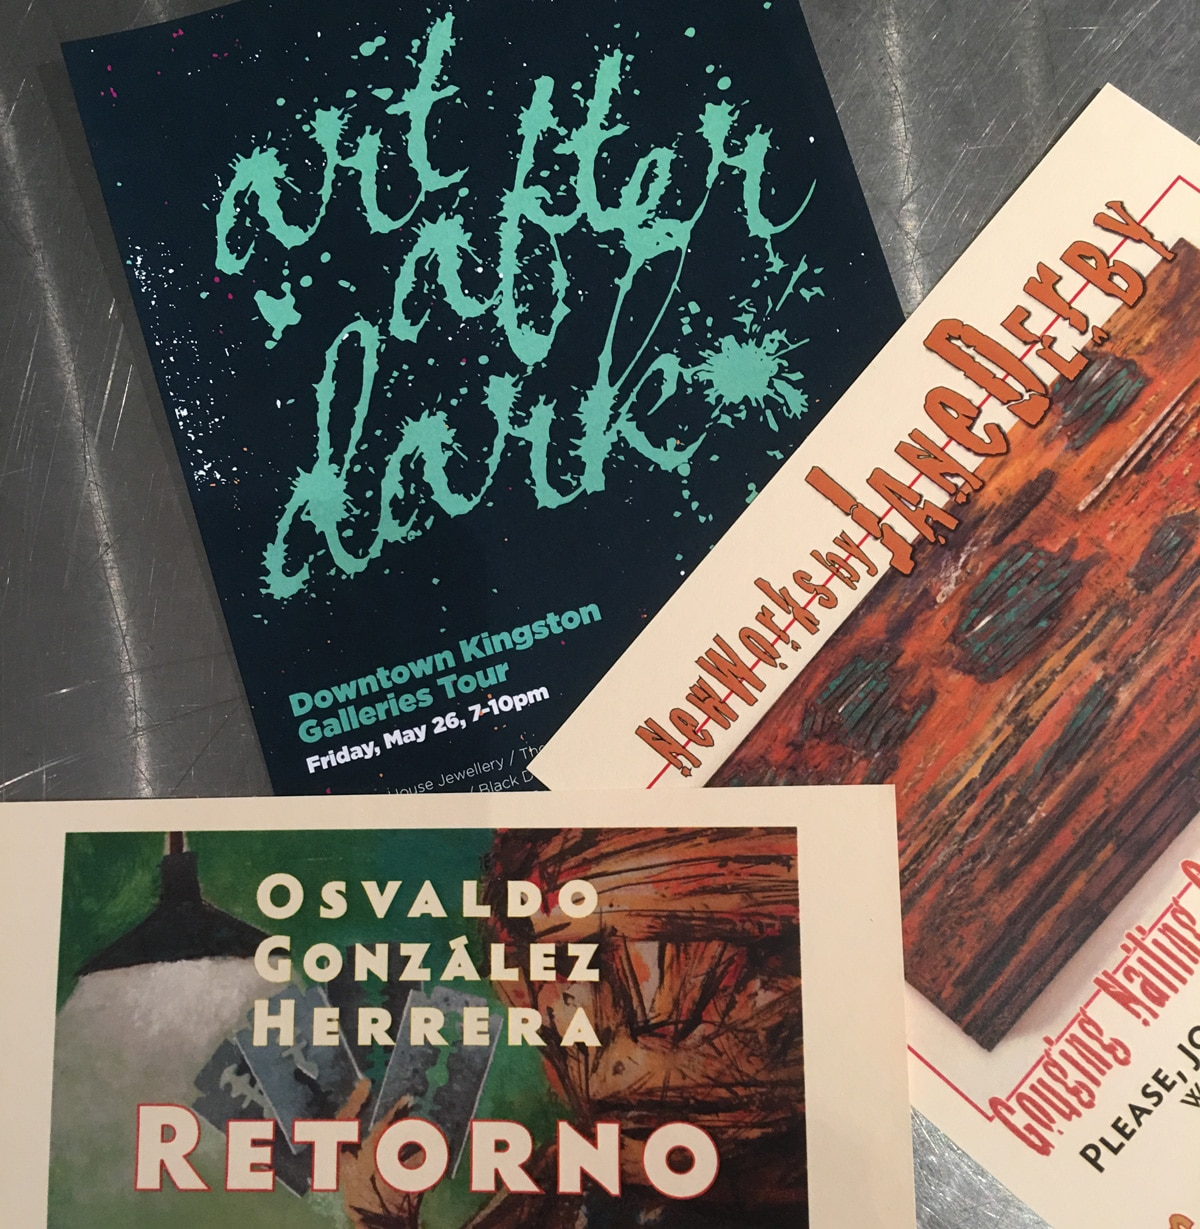 May 26th – New exhibit previews during Art After Dark